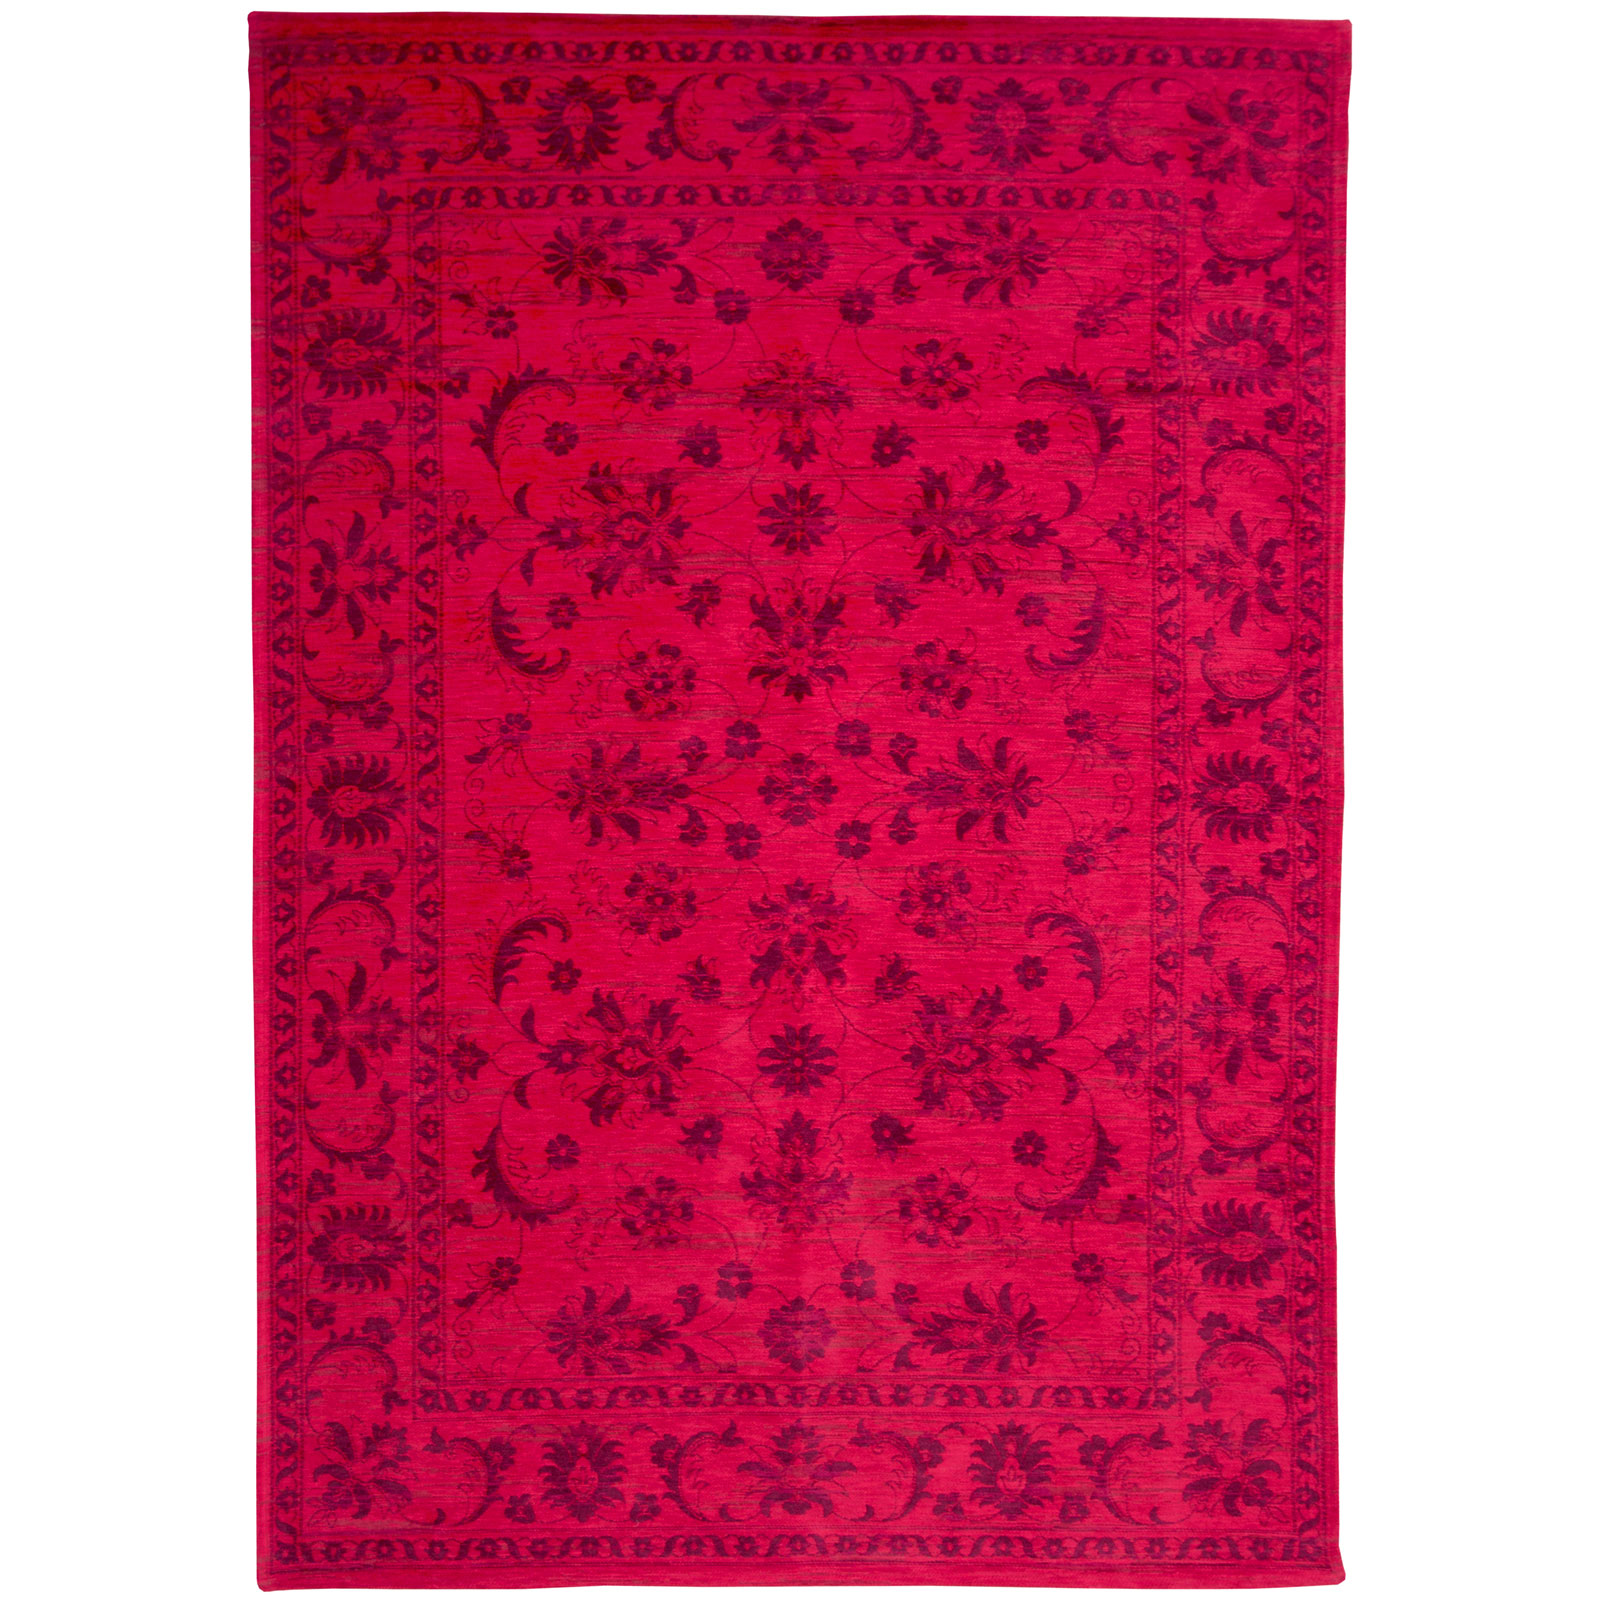 Louis De Poortere Rugs Young Urbanite Keshan 8034 Cranberry